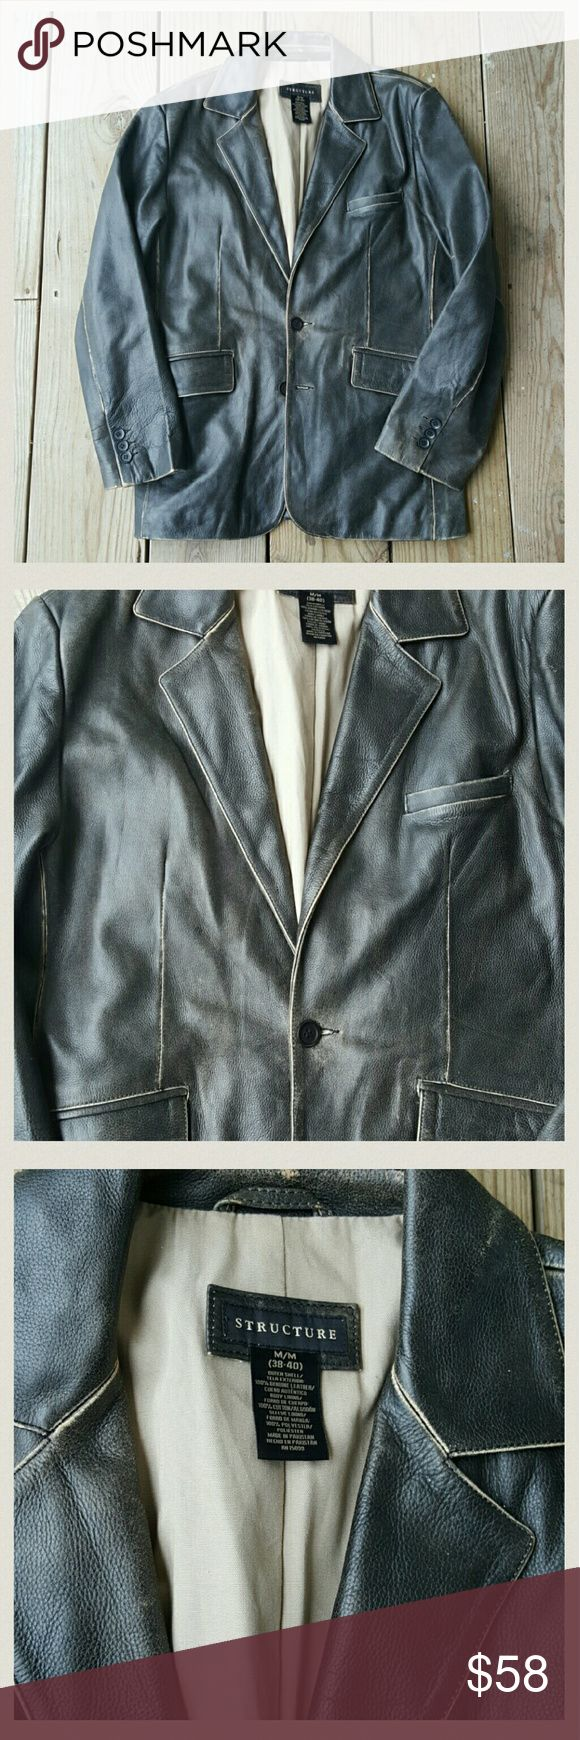 Gorgeous mens leather blazer/jacket by Structure Distressed leather, lined, size med, 38- 40 structure  Jackets & Coats Bomber & Varsity